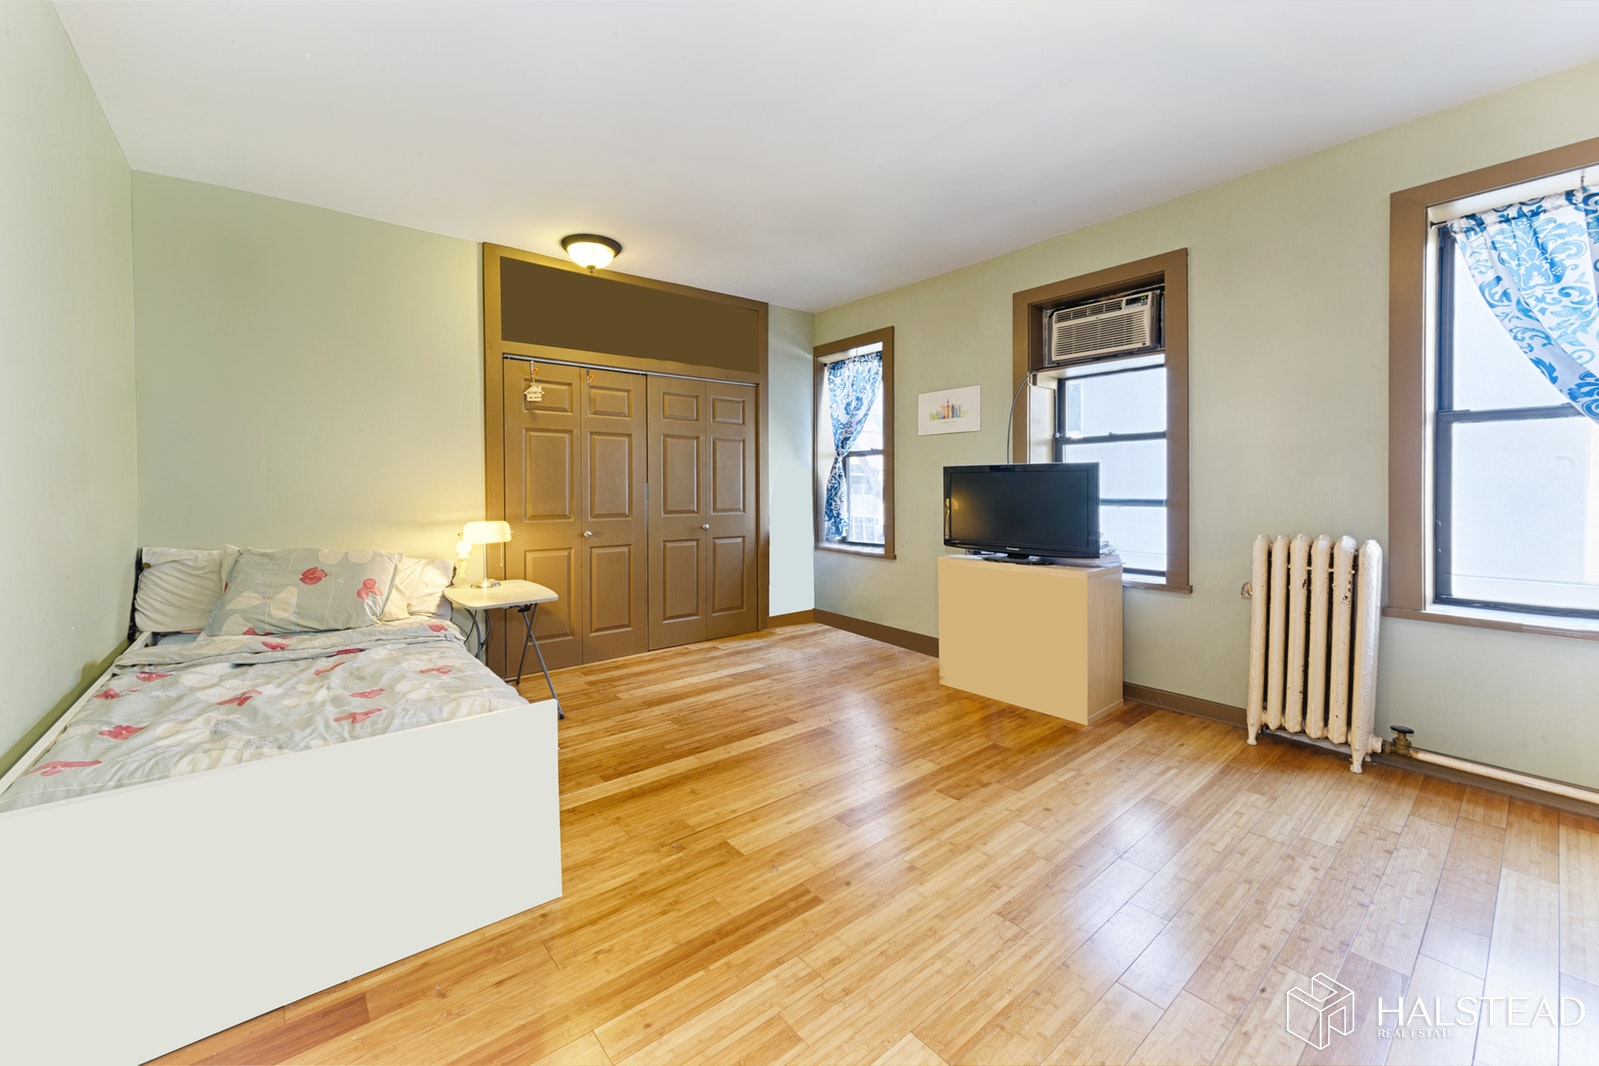 411 WEST 44TH STREET 12, Midtown West, $489,000, Web #: 19768381